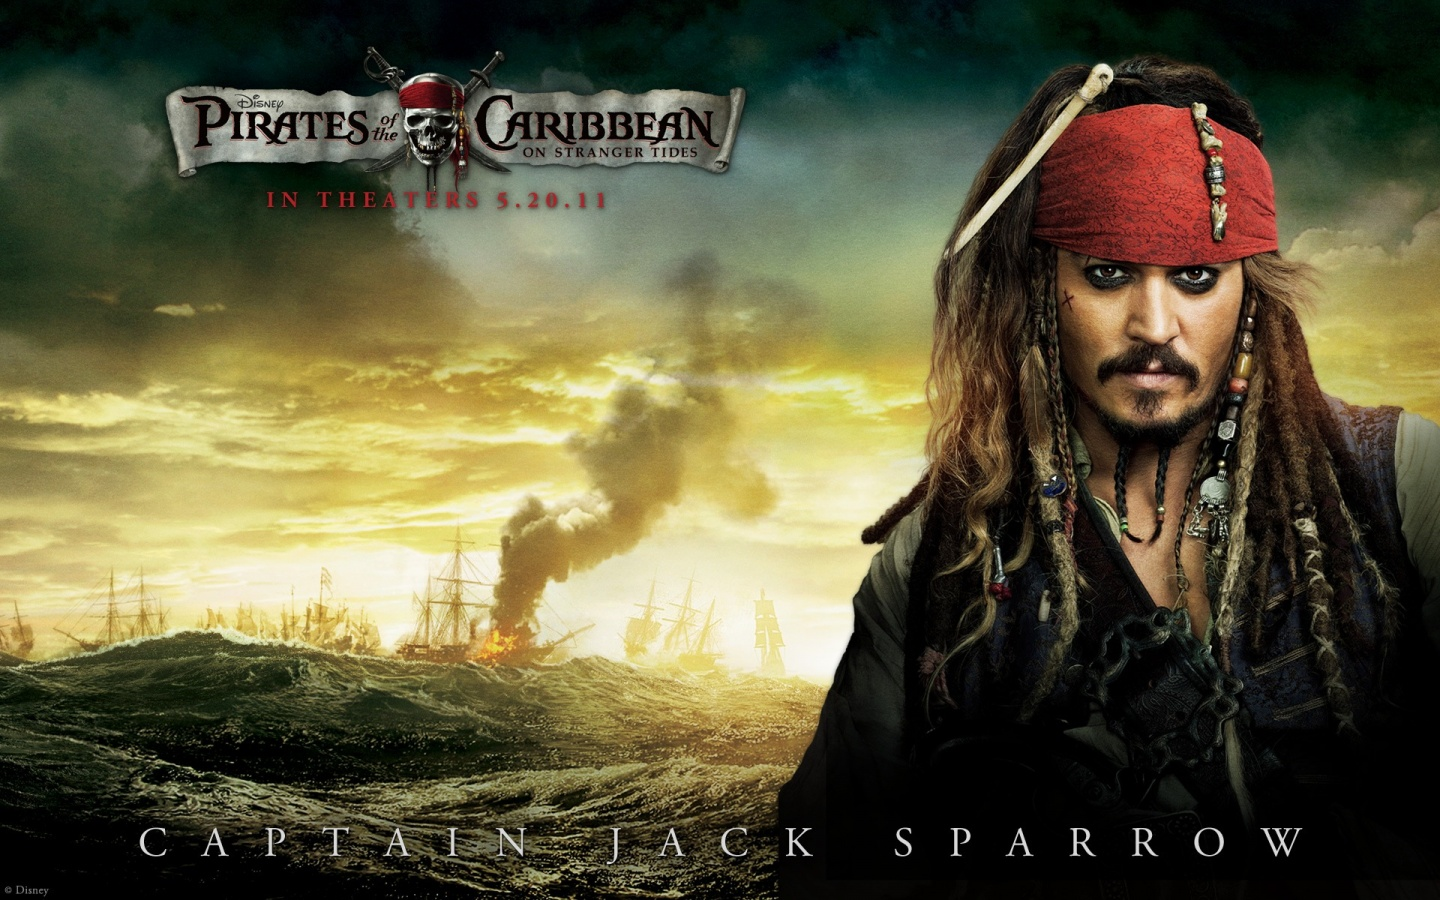 http://3.bp.blogspot.com/-9otvw_s2stY/TdDNAhARKmI/AAAAAAAAArc/XD0C0KX65ho/s1600/pirates_of_the_caribbean_on_stranger_tides_2011_04_movie_poster_wallpaper_background-1440x900.jpg